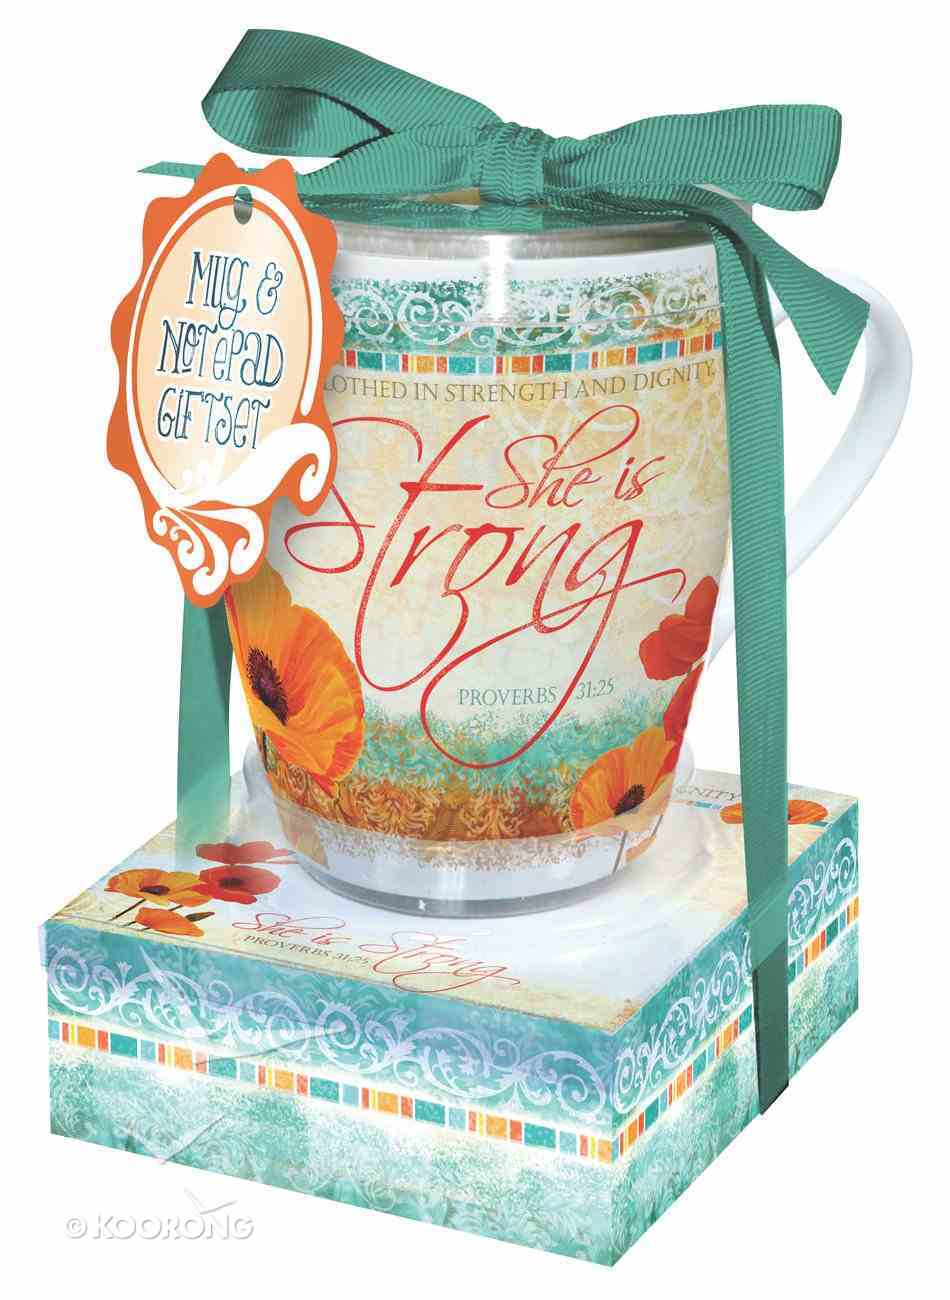 Poppies: Mug & Notepad Giftset, She is Strong Pack